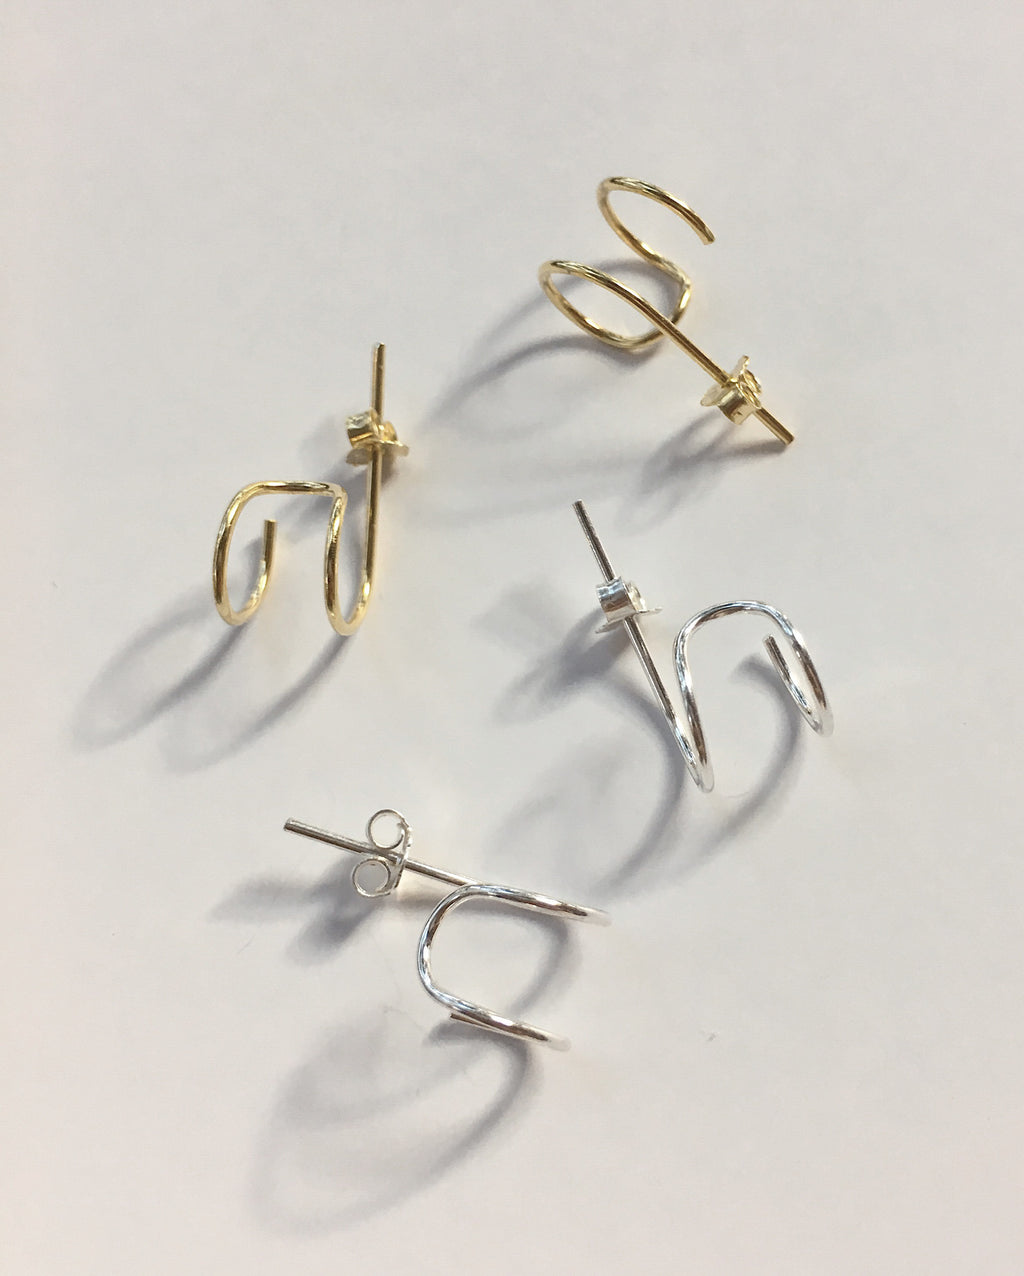 Minimalistic stacking hoop earrings - get the double hoop look with the Filament earrings - The Hexad